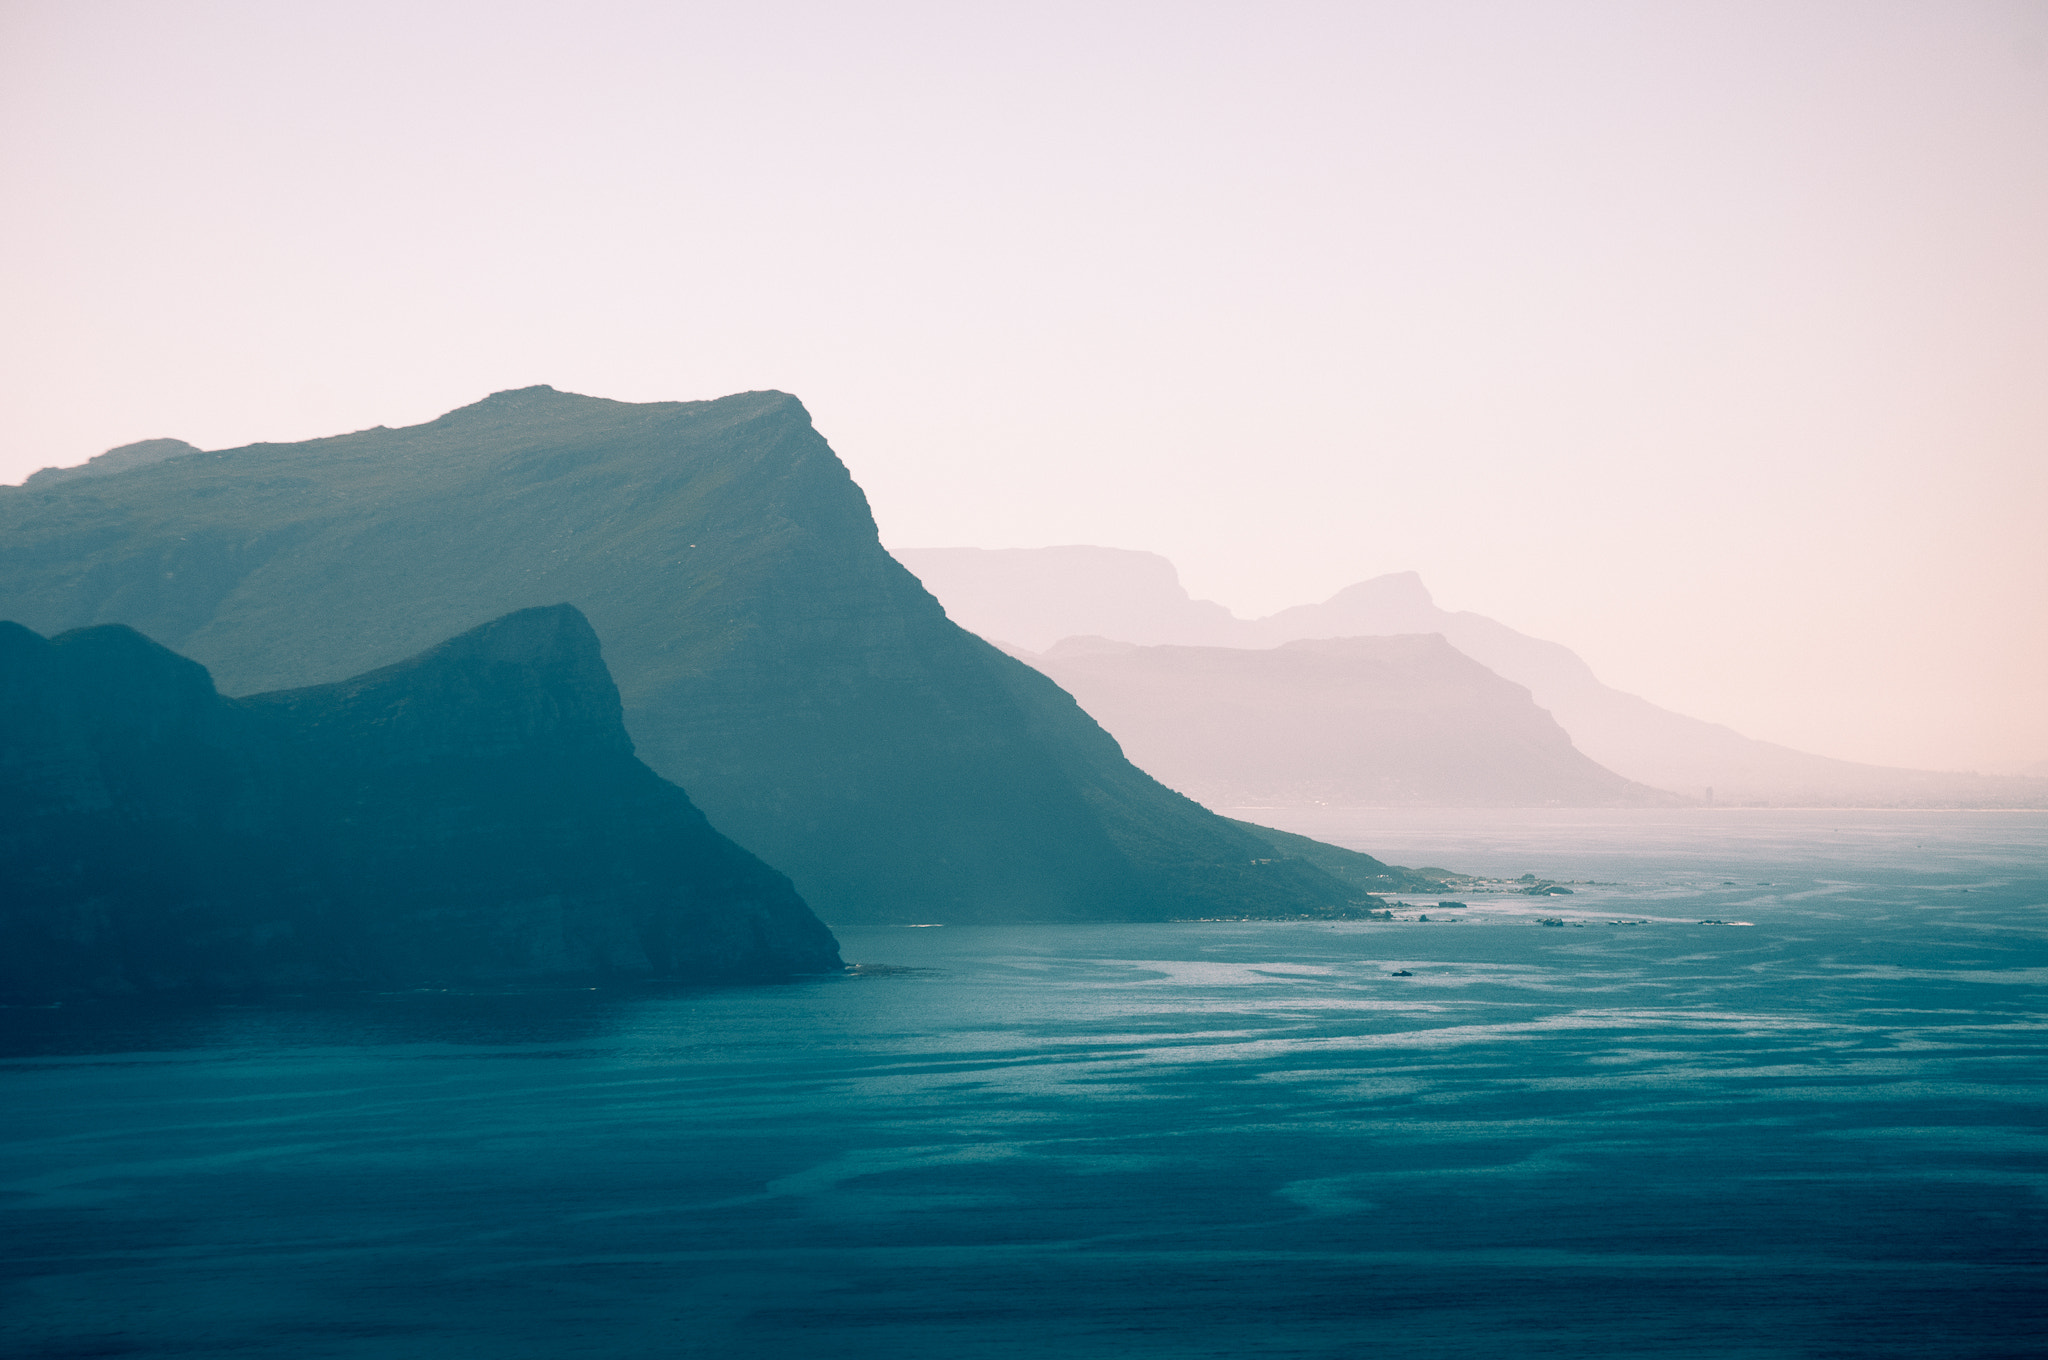 Photograph Edge of the World by Cameron Zohoori on 500px